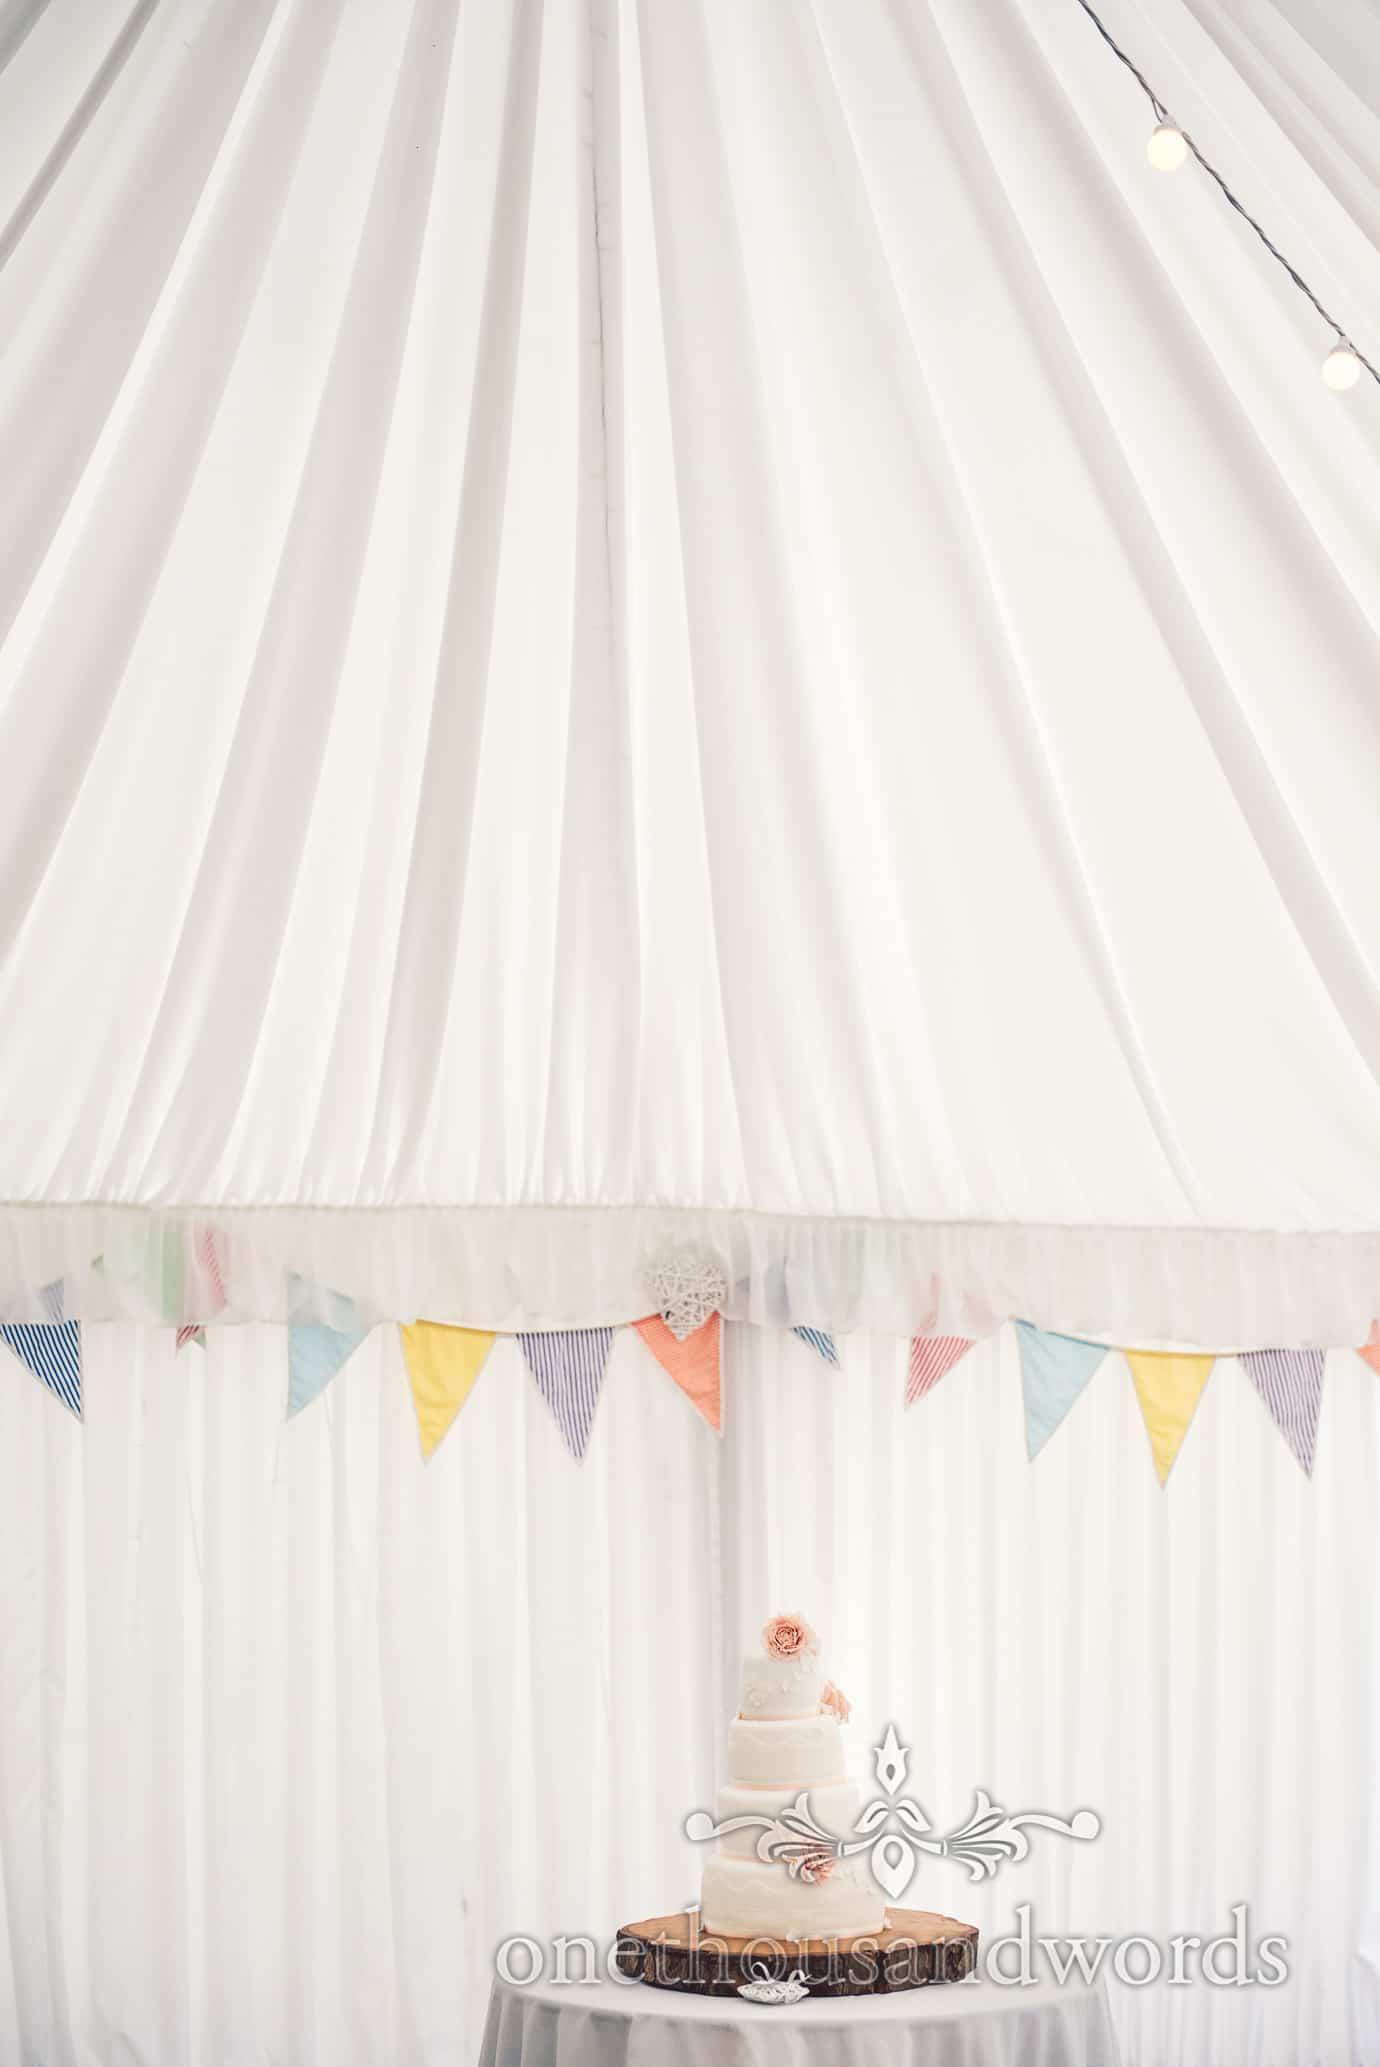 wedding cake on wood slice with bunting in marquee at Deans Court wedding